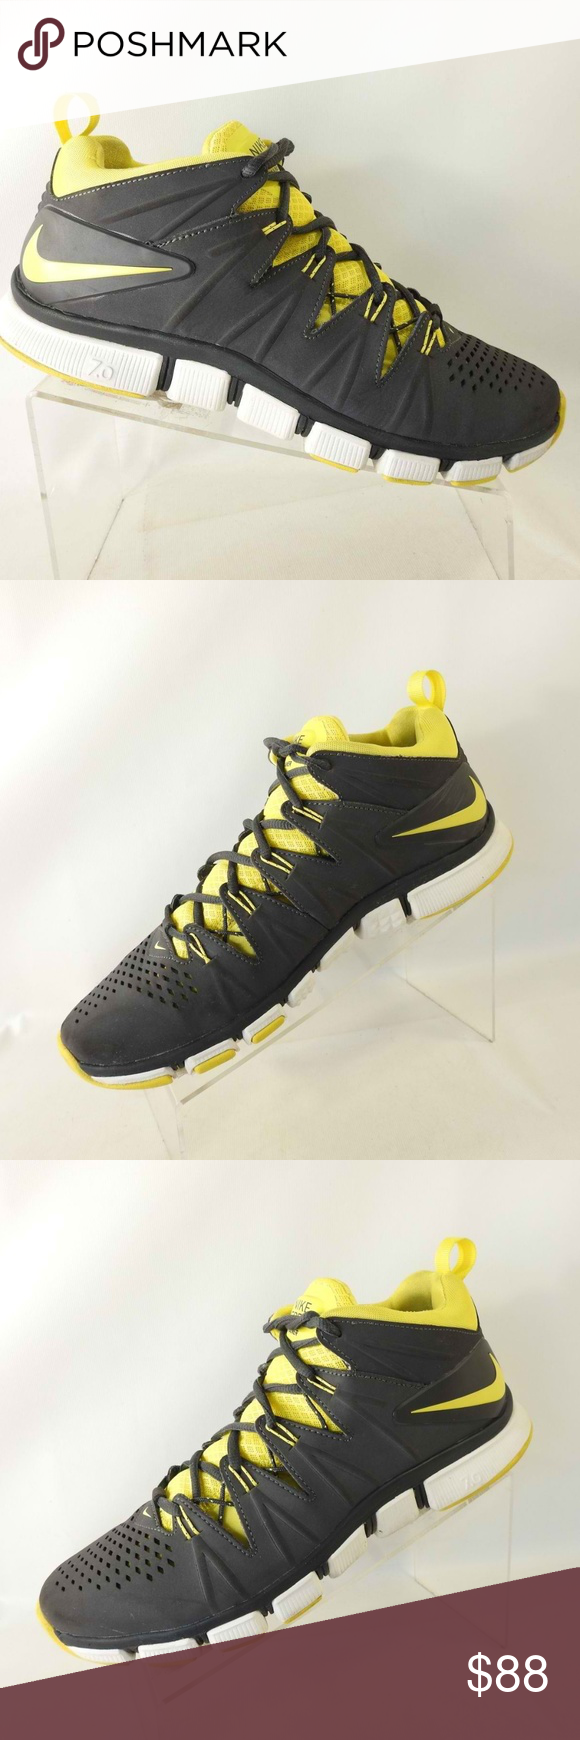 ce78d194569 Nike Free Trainer 7.0 Size 10.5 Running Mens Shoes Nike Free Trainer 7.0  599086-007